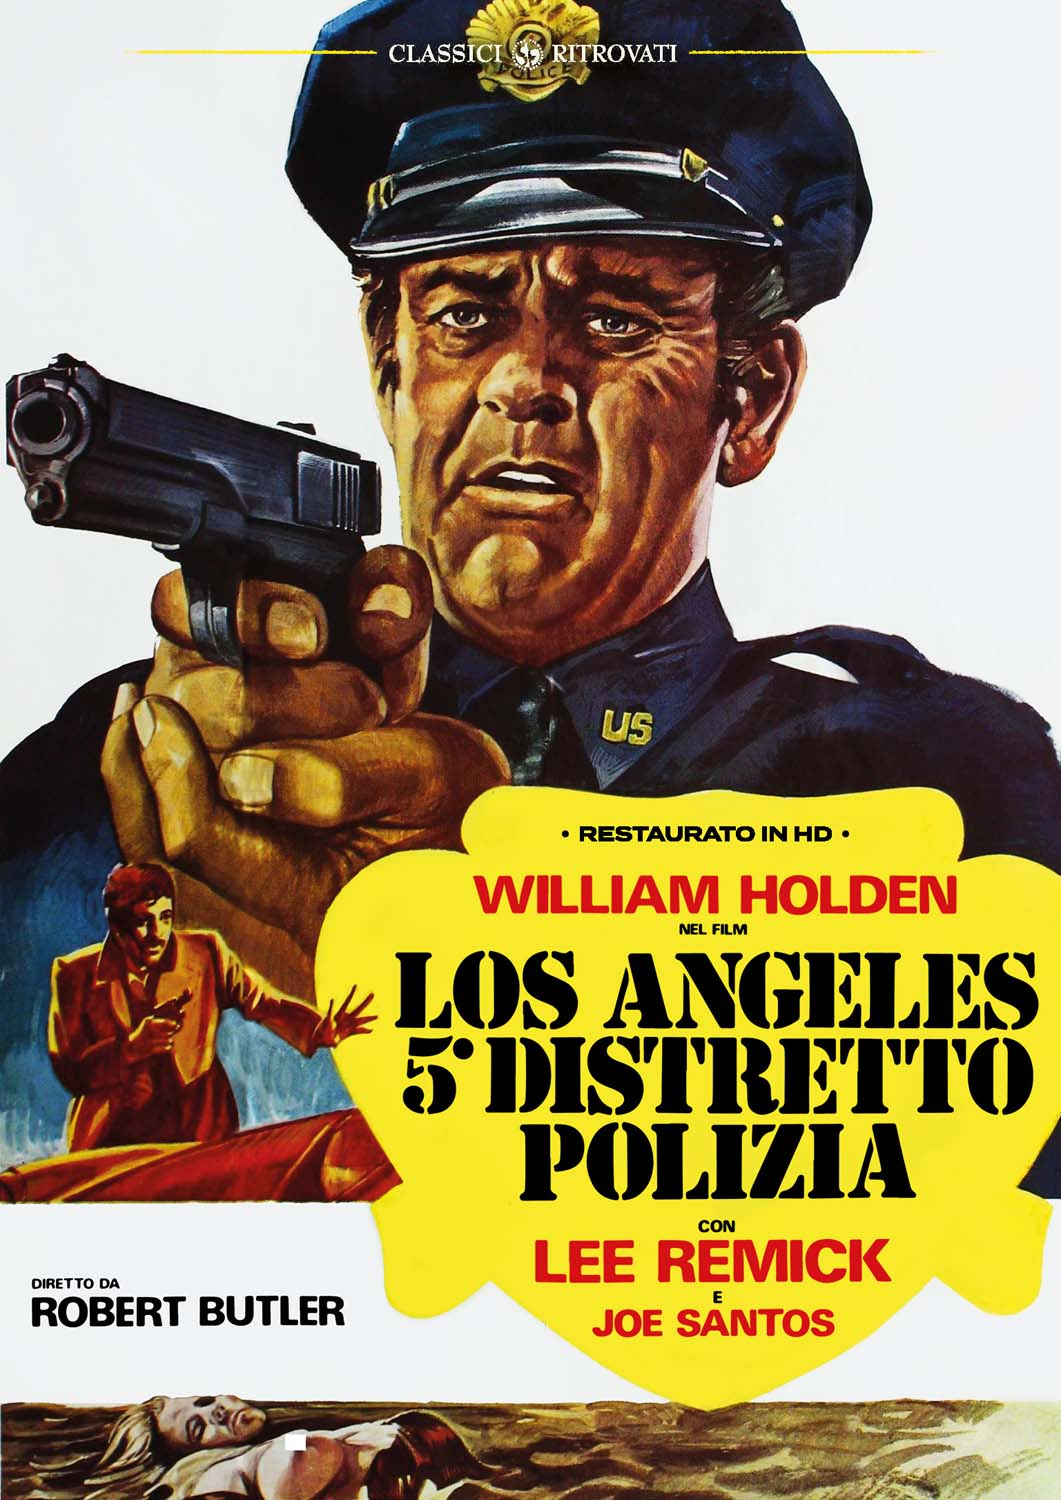 LOS ANGELES QUINTO DISTRETTO DI POLIZIA (RESTAURATO IN HD) (DVD)